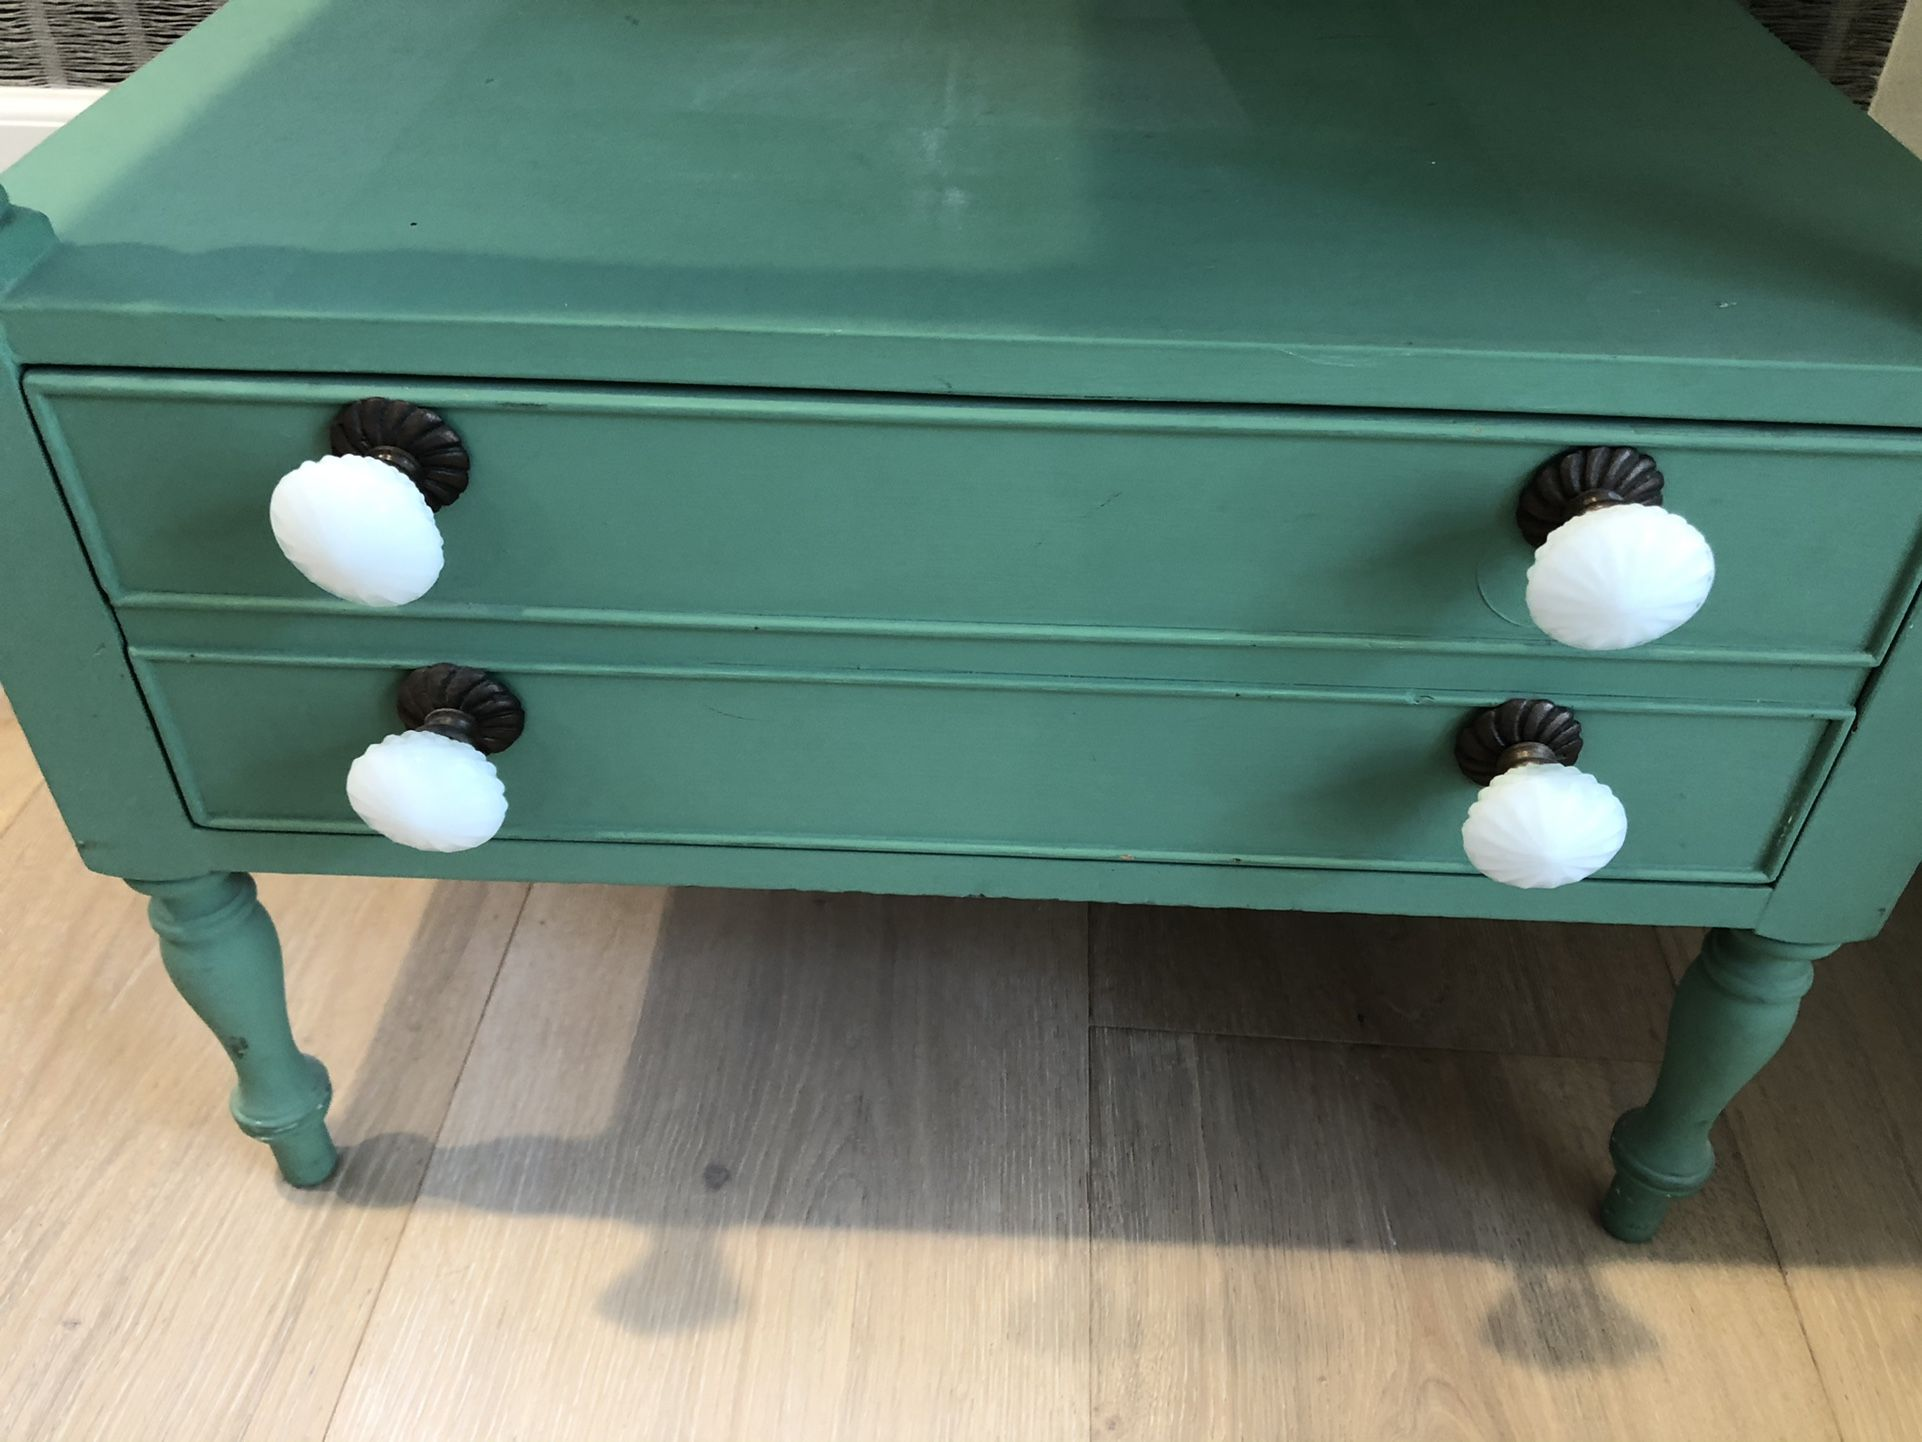 Antique Green End/Side Table With Milk glass Knobs